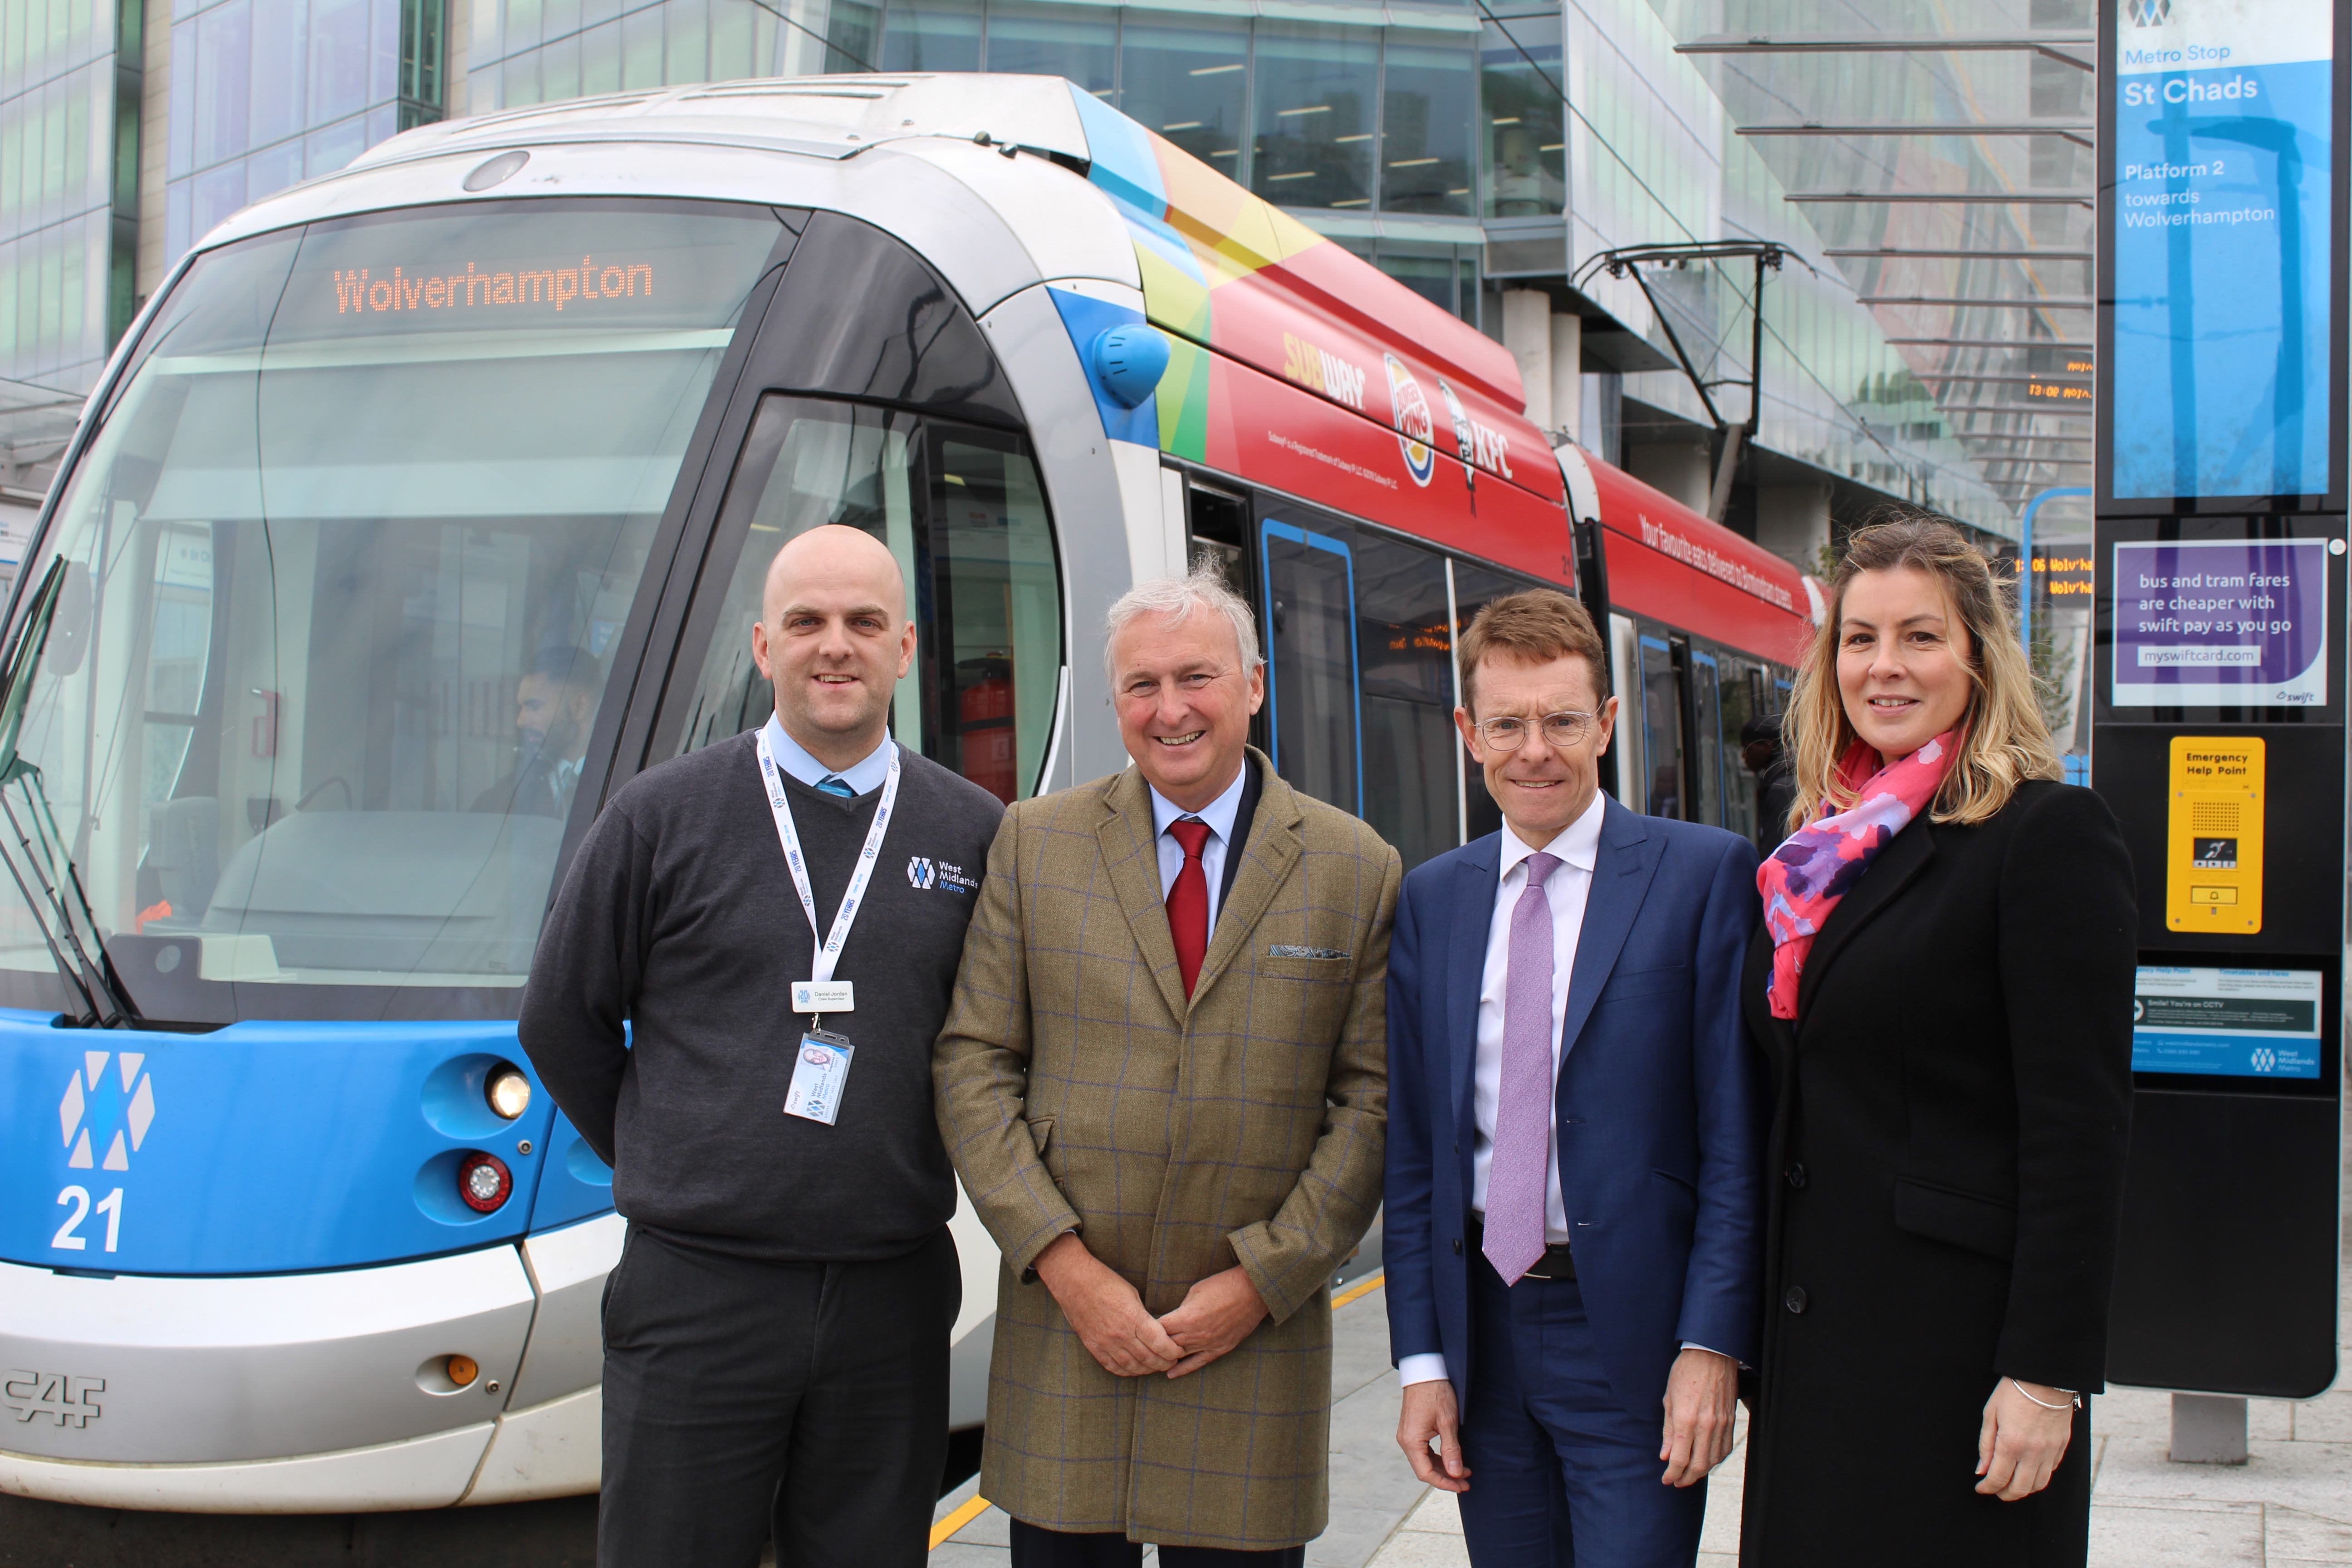 West Midlands Metro orders 21 new trams for rapidly expanding network